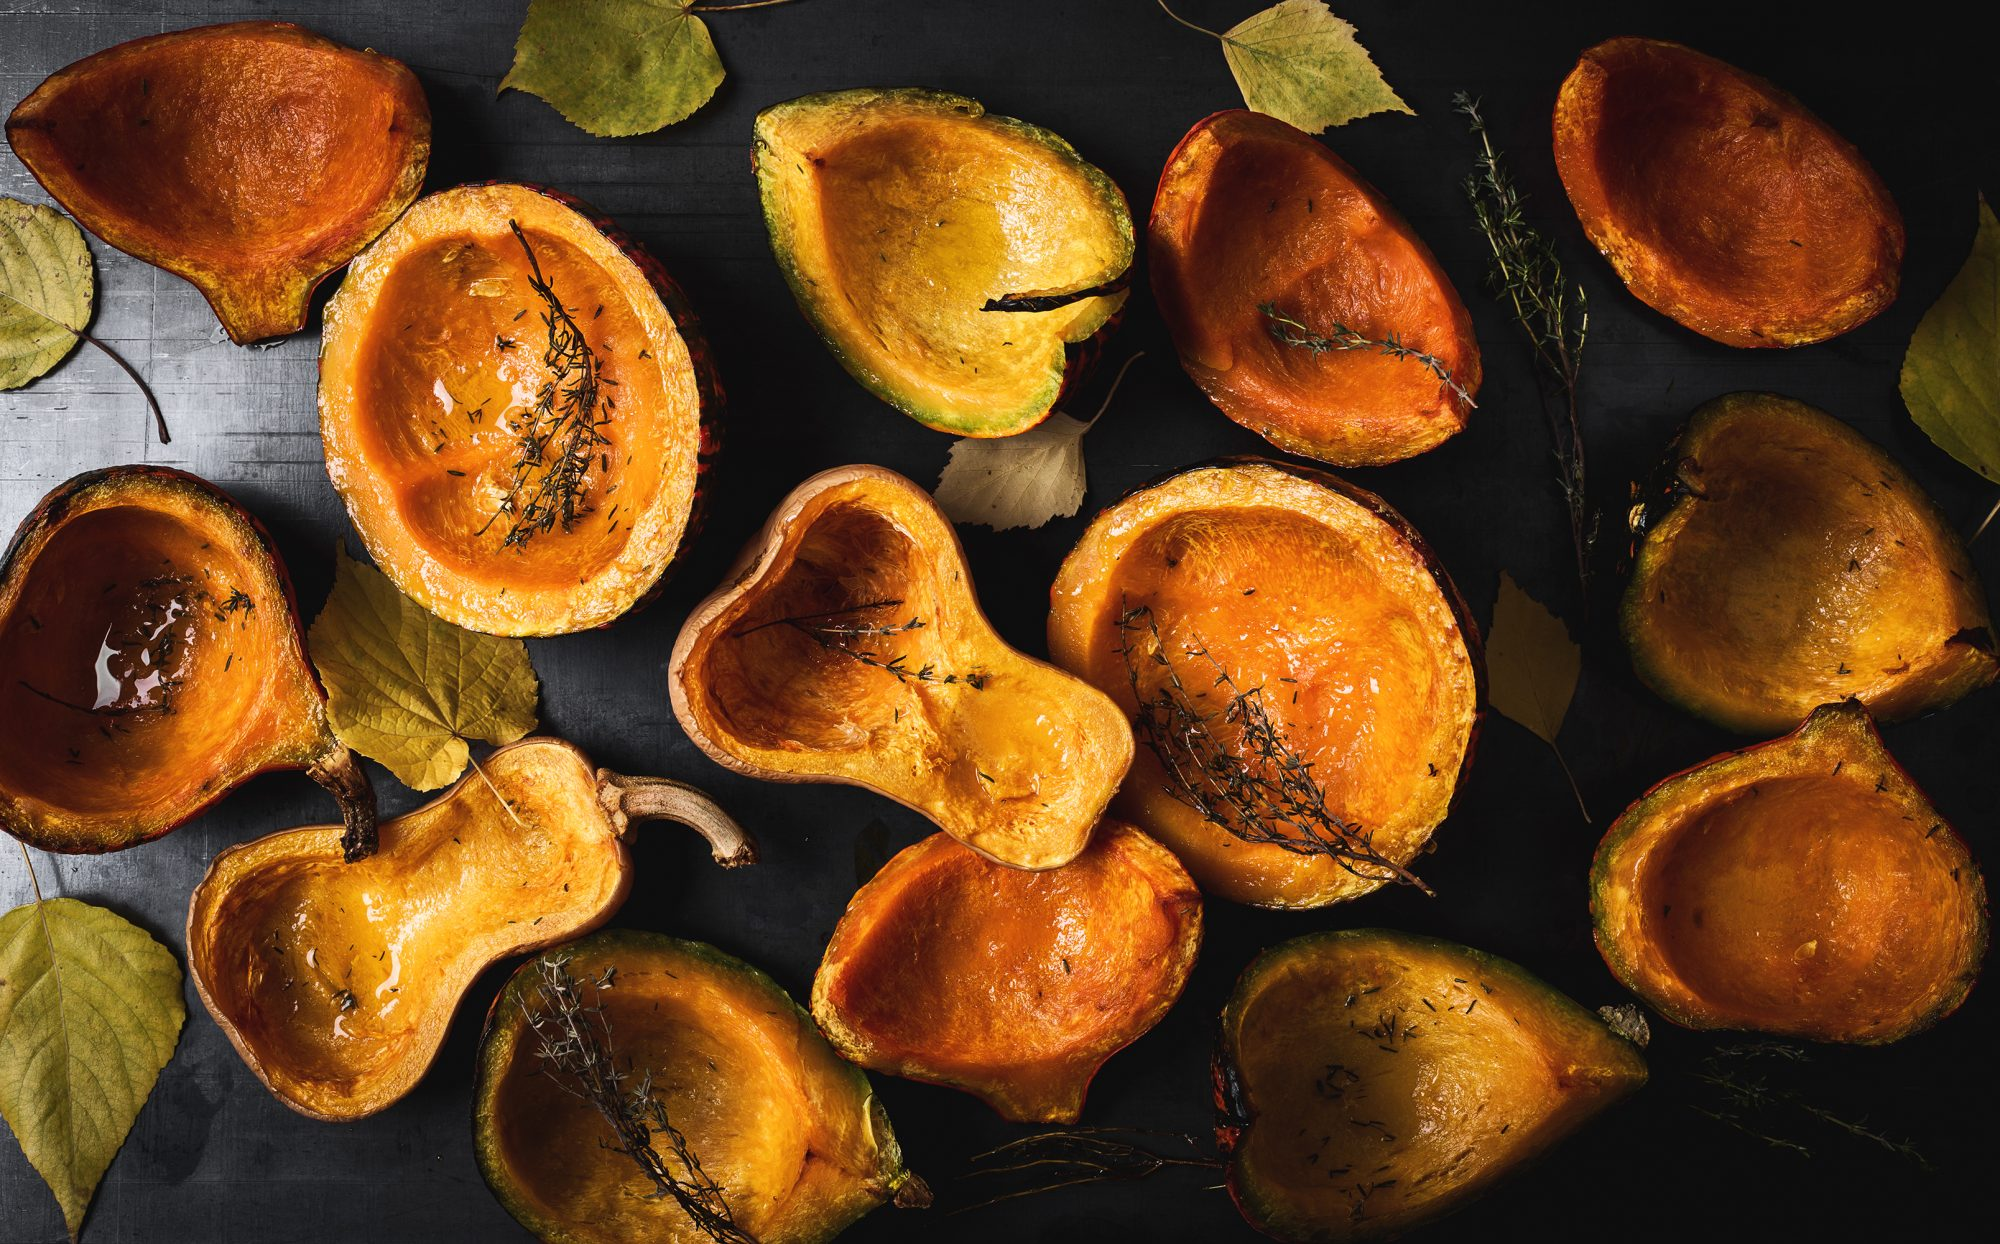 Roasted pumpkins, thyme and autumn leaves